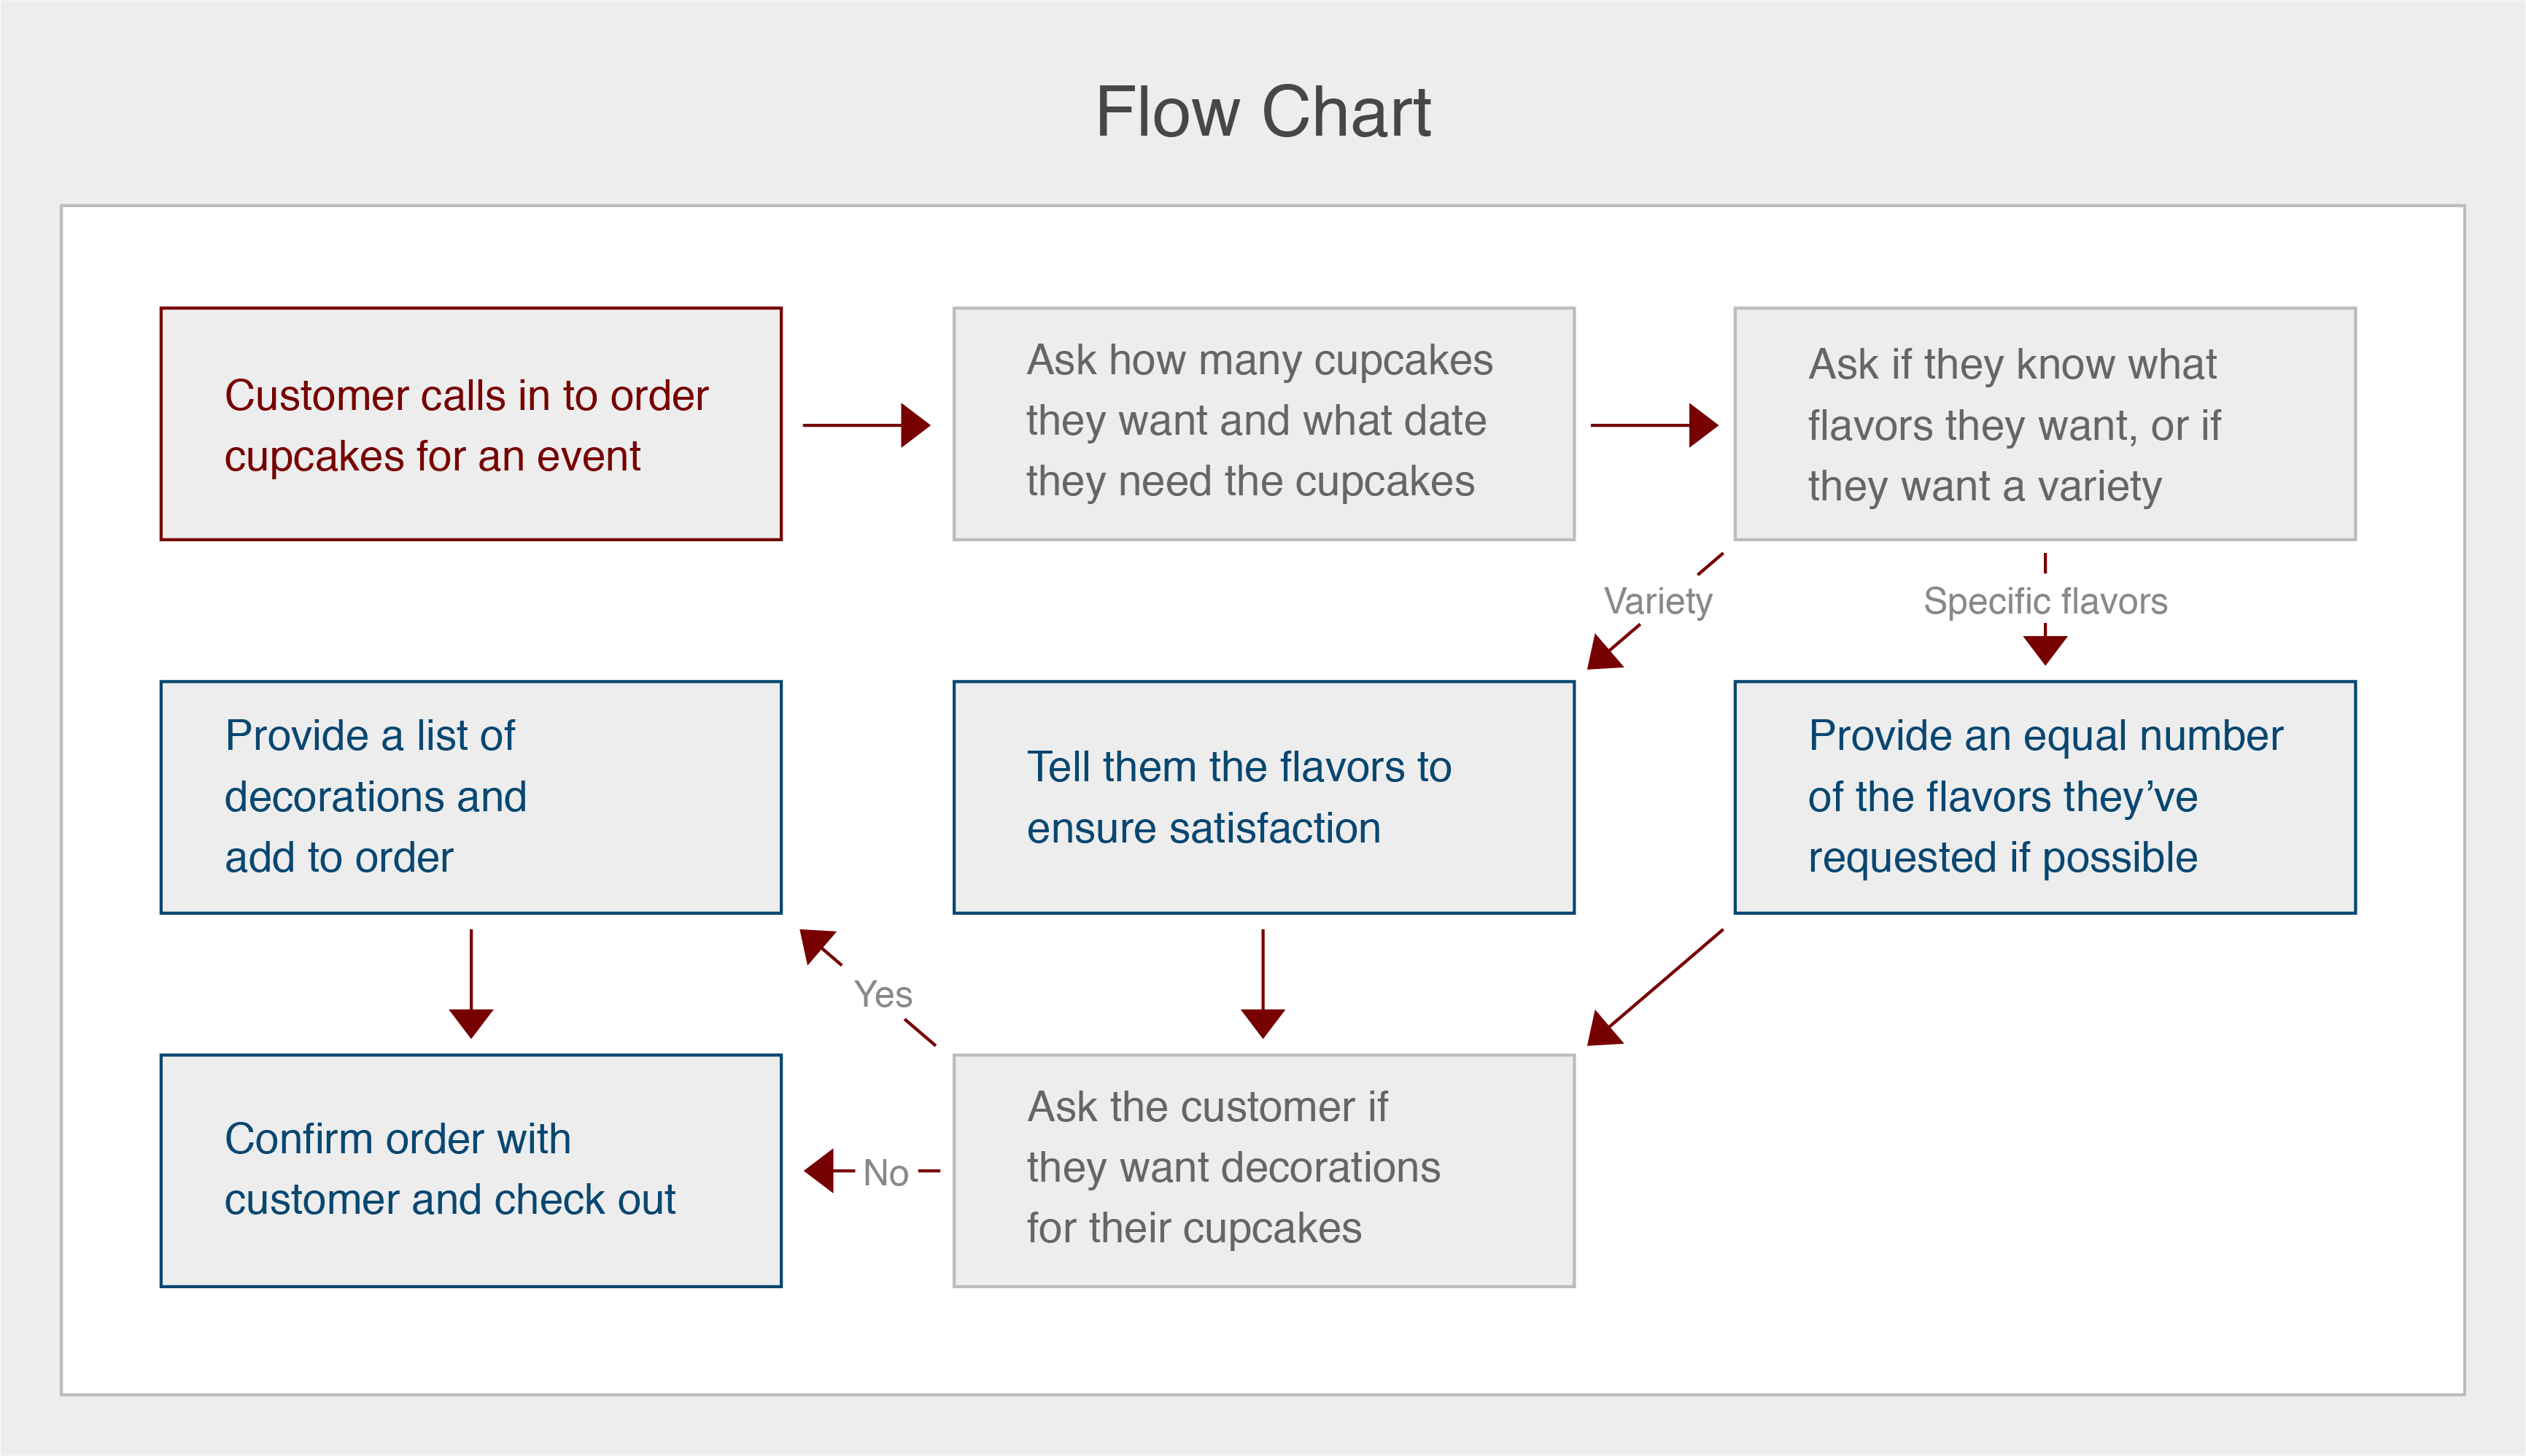 A flow chart example displaying the sample flow of a cupcake shop.